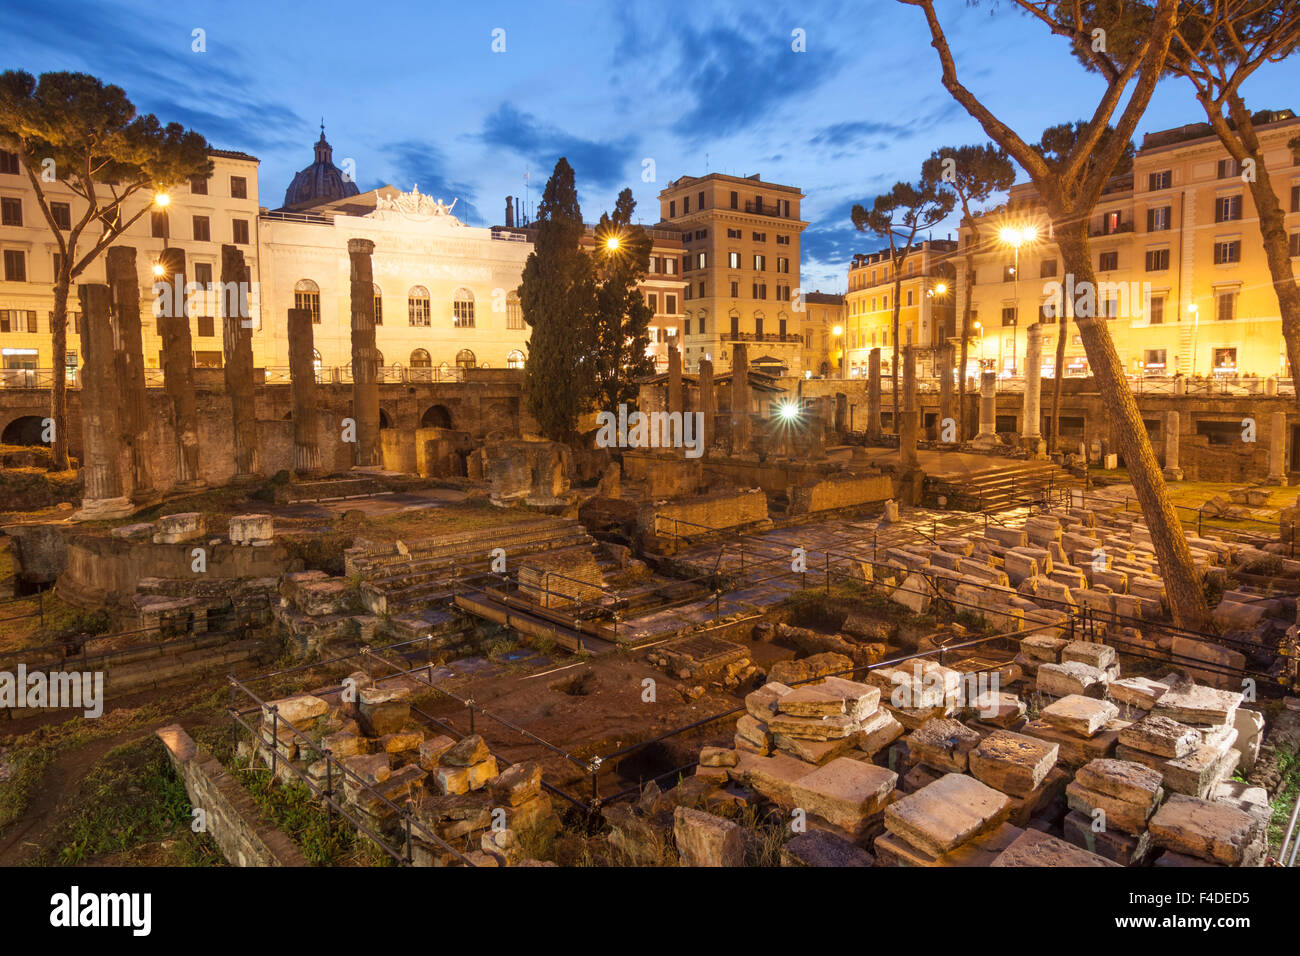 Temple B, dedicated to Fortuna Huiusce Diei. Ancient Rome remains at Largo di Torre Argentina, Rome, Italy - Stock Image